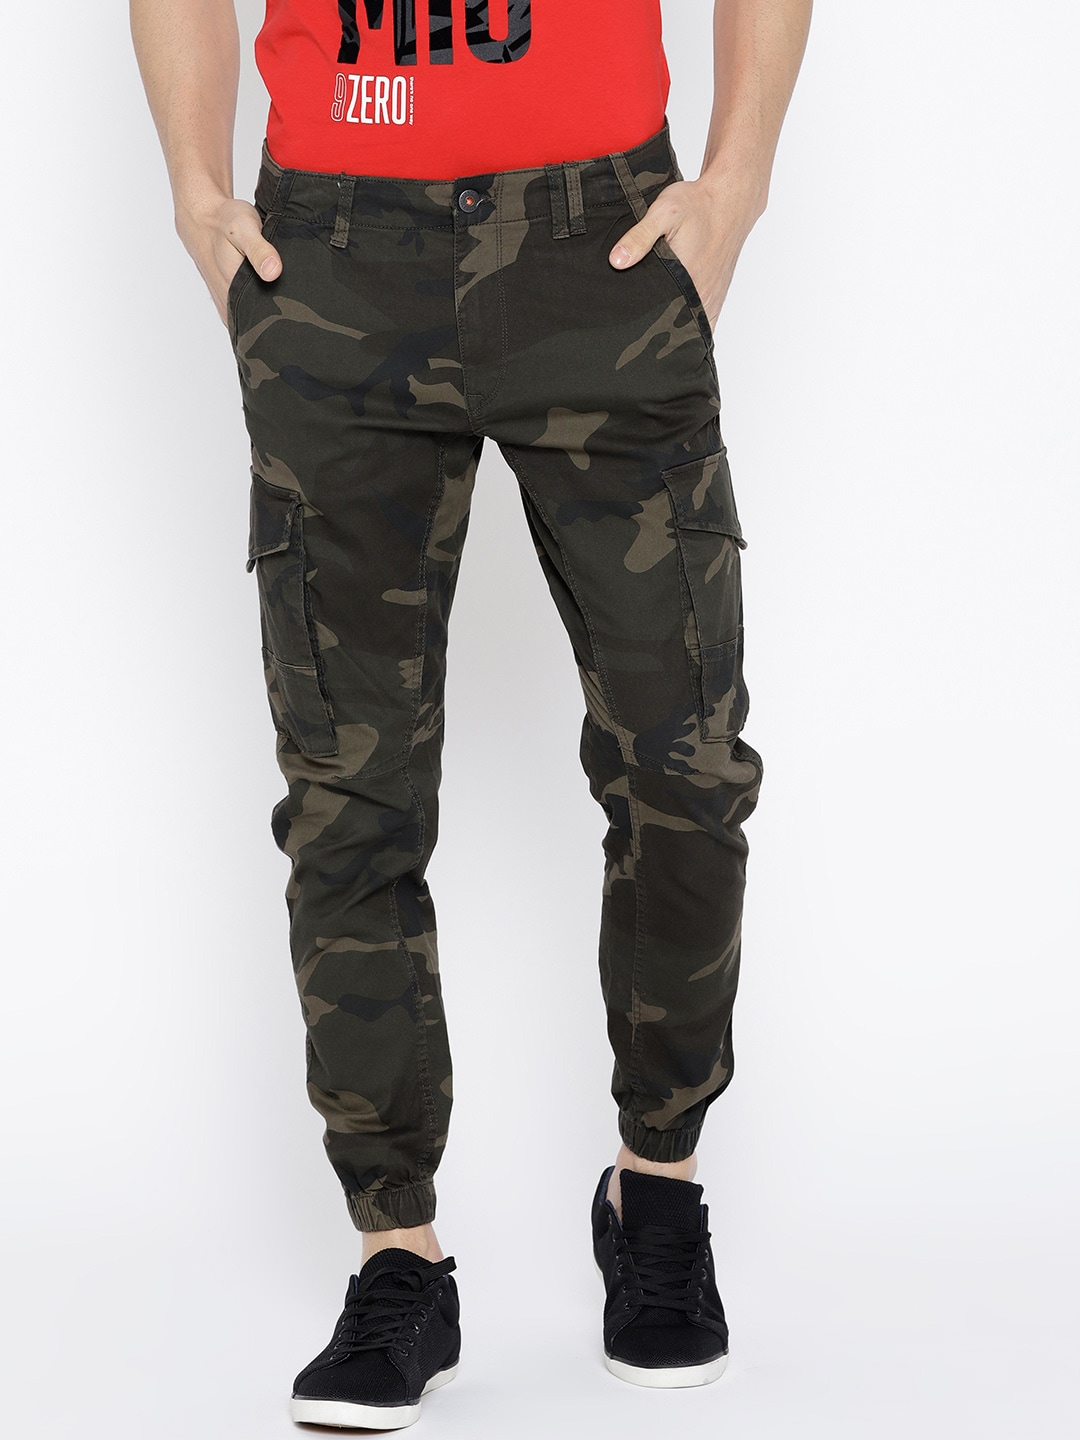 960e0f03a065d Camouflage Pants - Buy Camo Army Cargo Pants for Men   Women